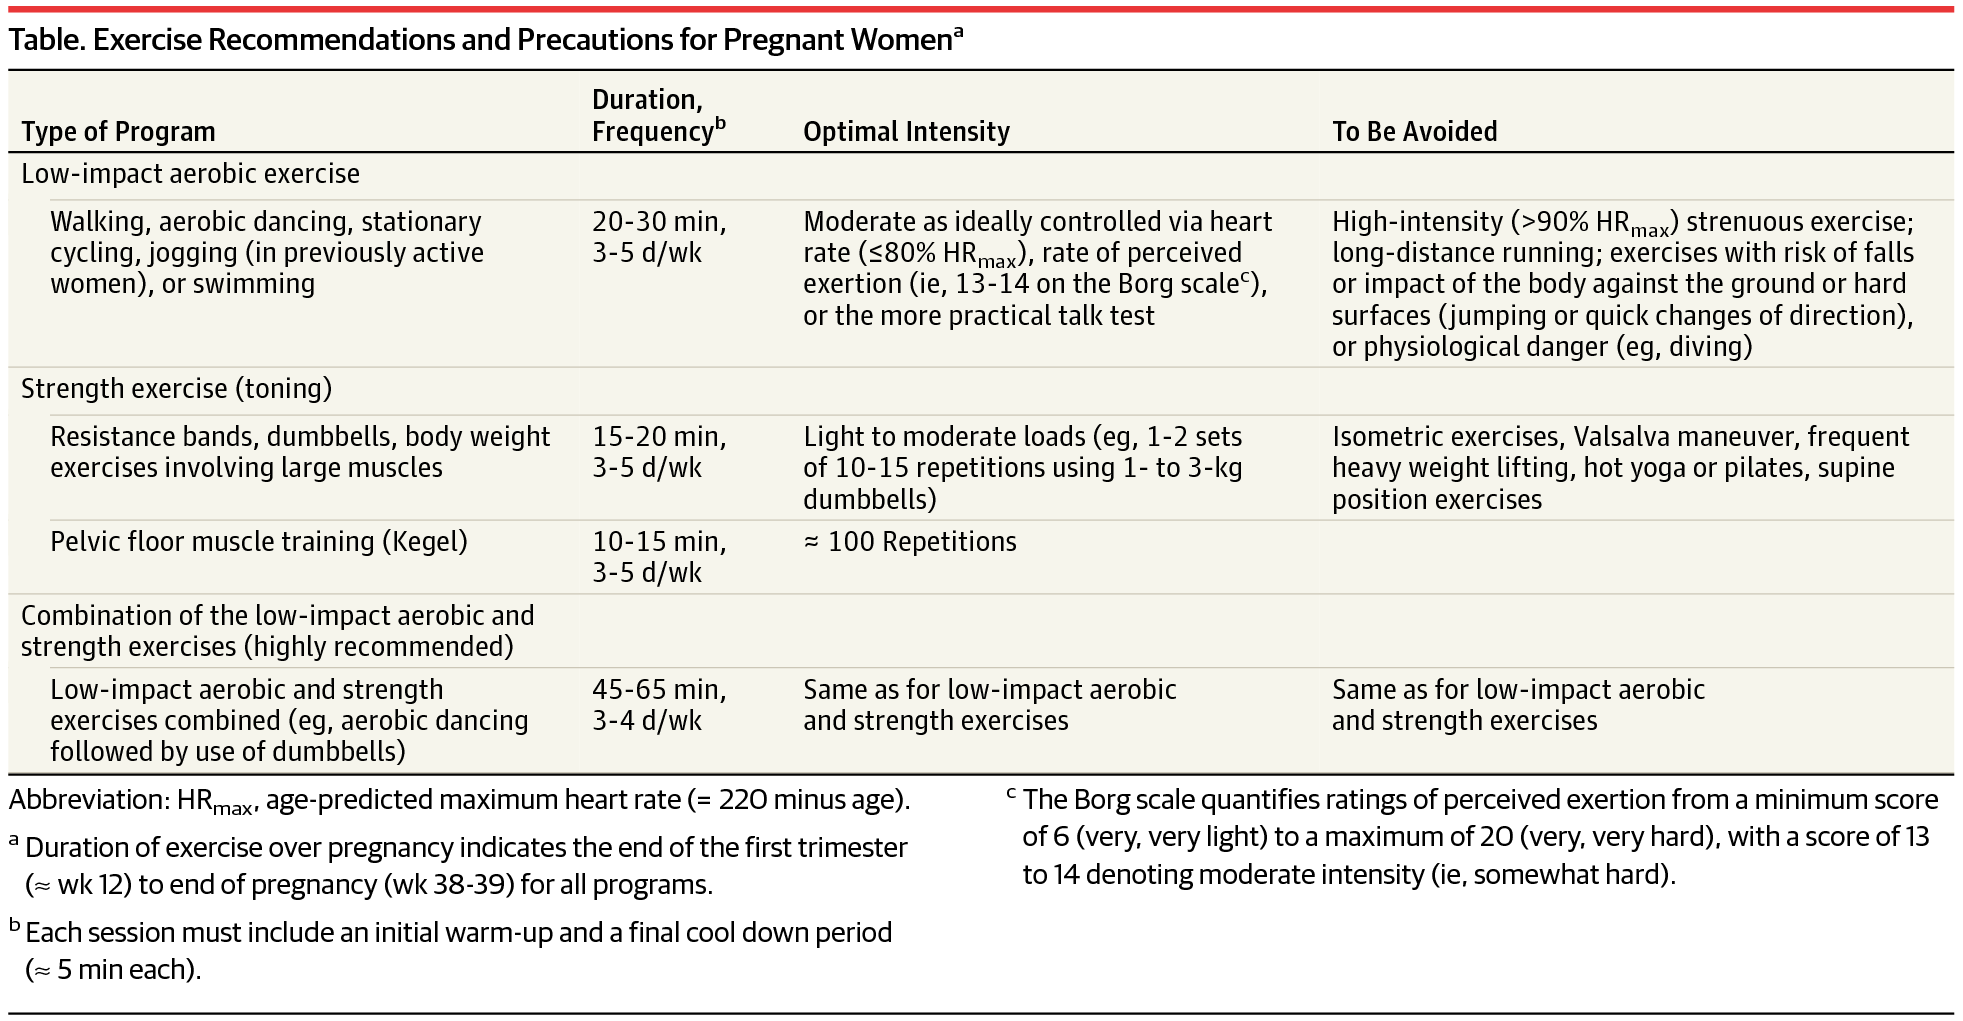 jama instructions for authors